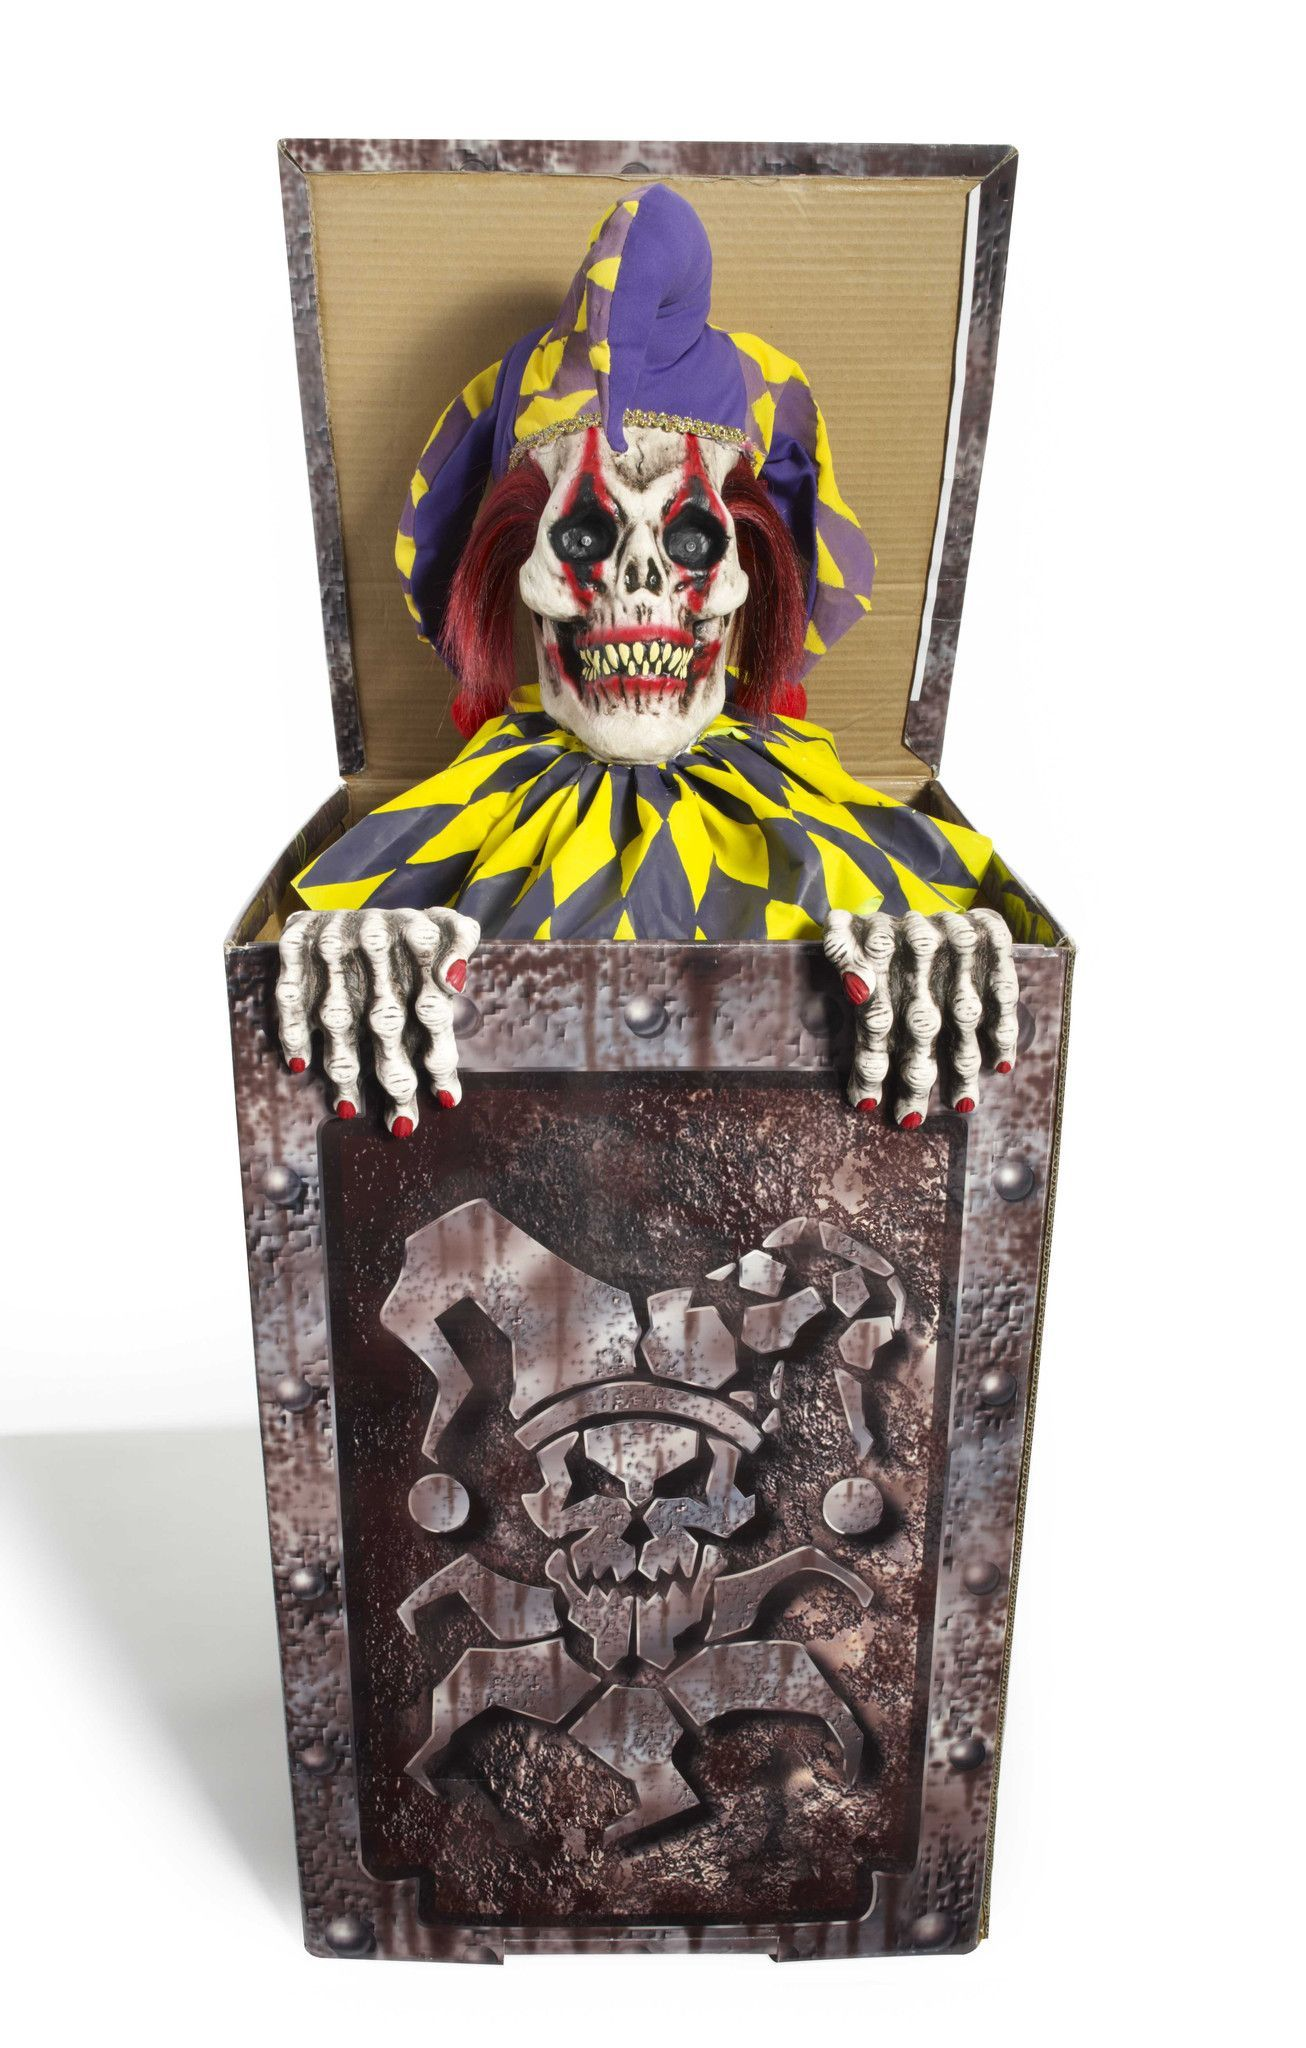 He's NOT a friendly Jack in the Box! Come closer and he'll tell you himself! Built in sound sensor sets off this very scary jester, who will rise up from his box to scare your guests if they get too c